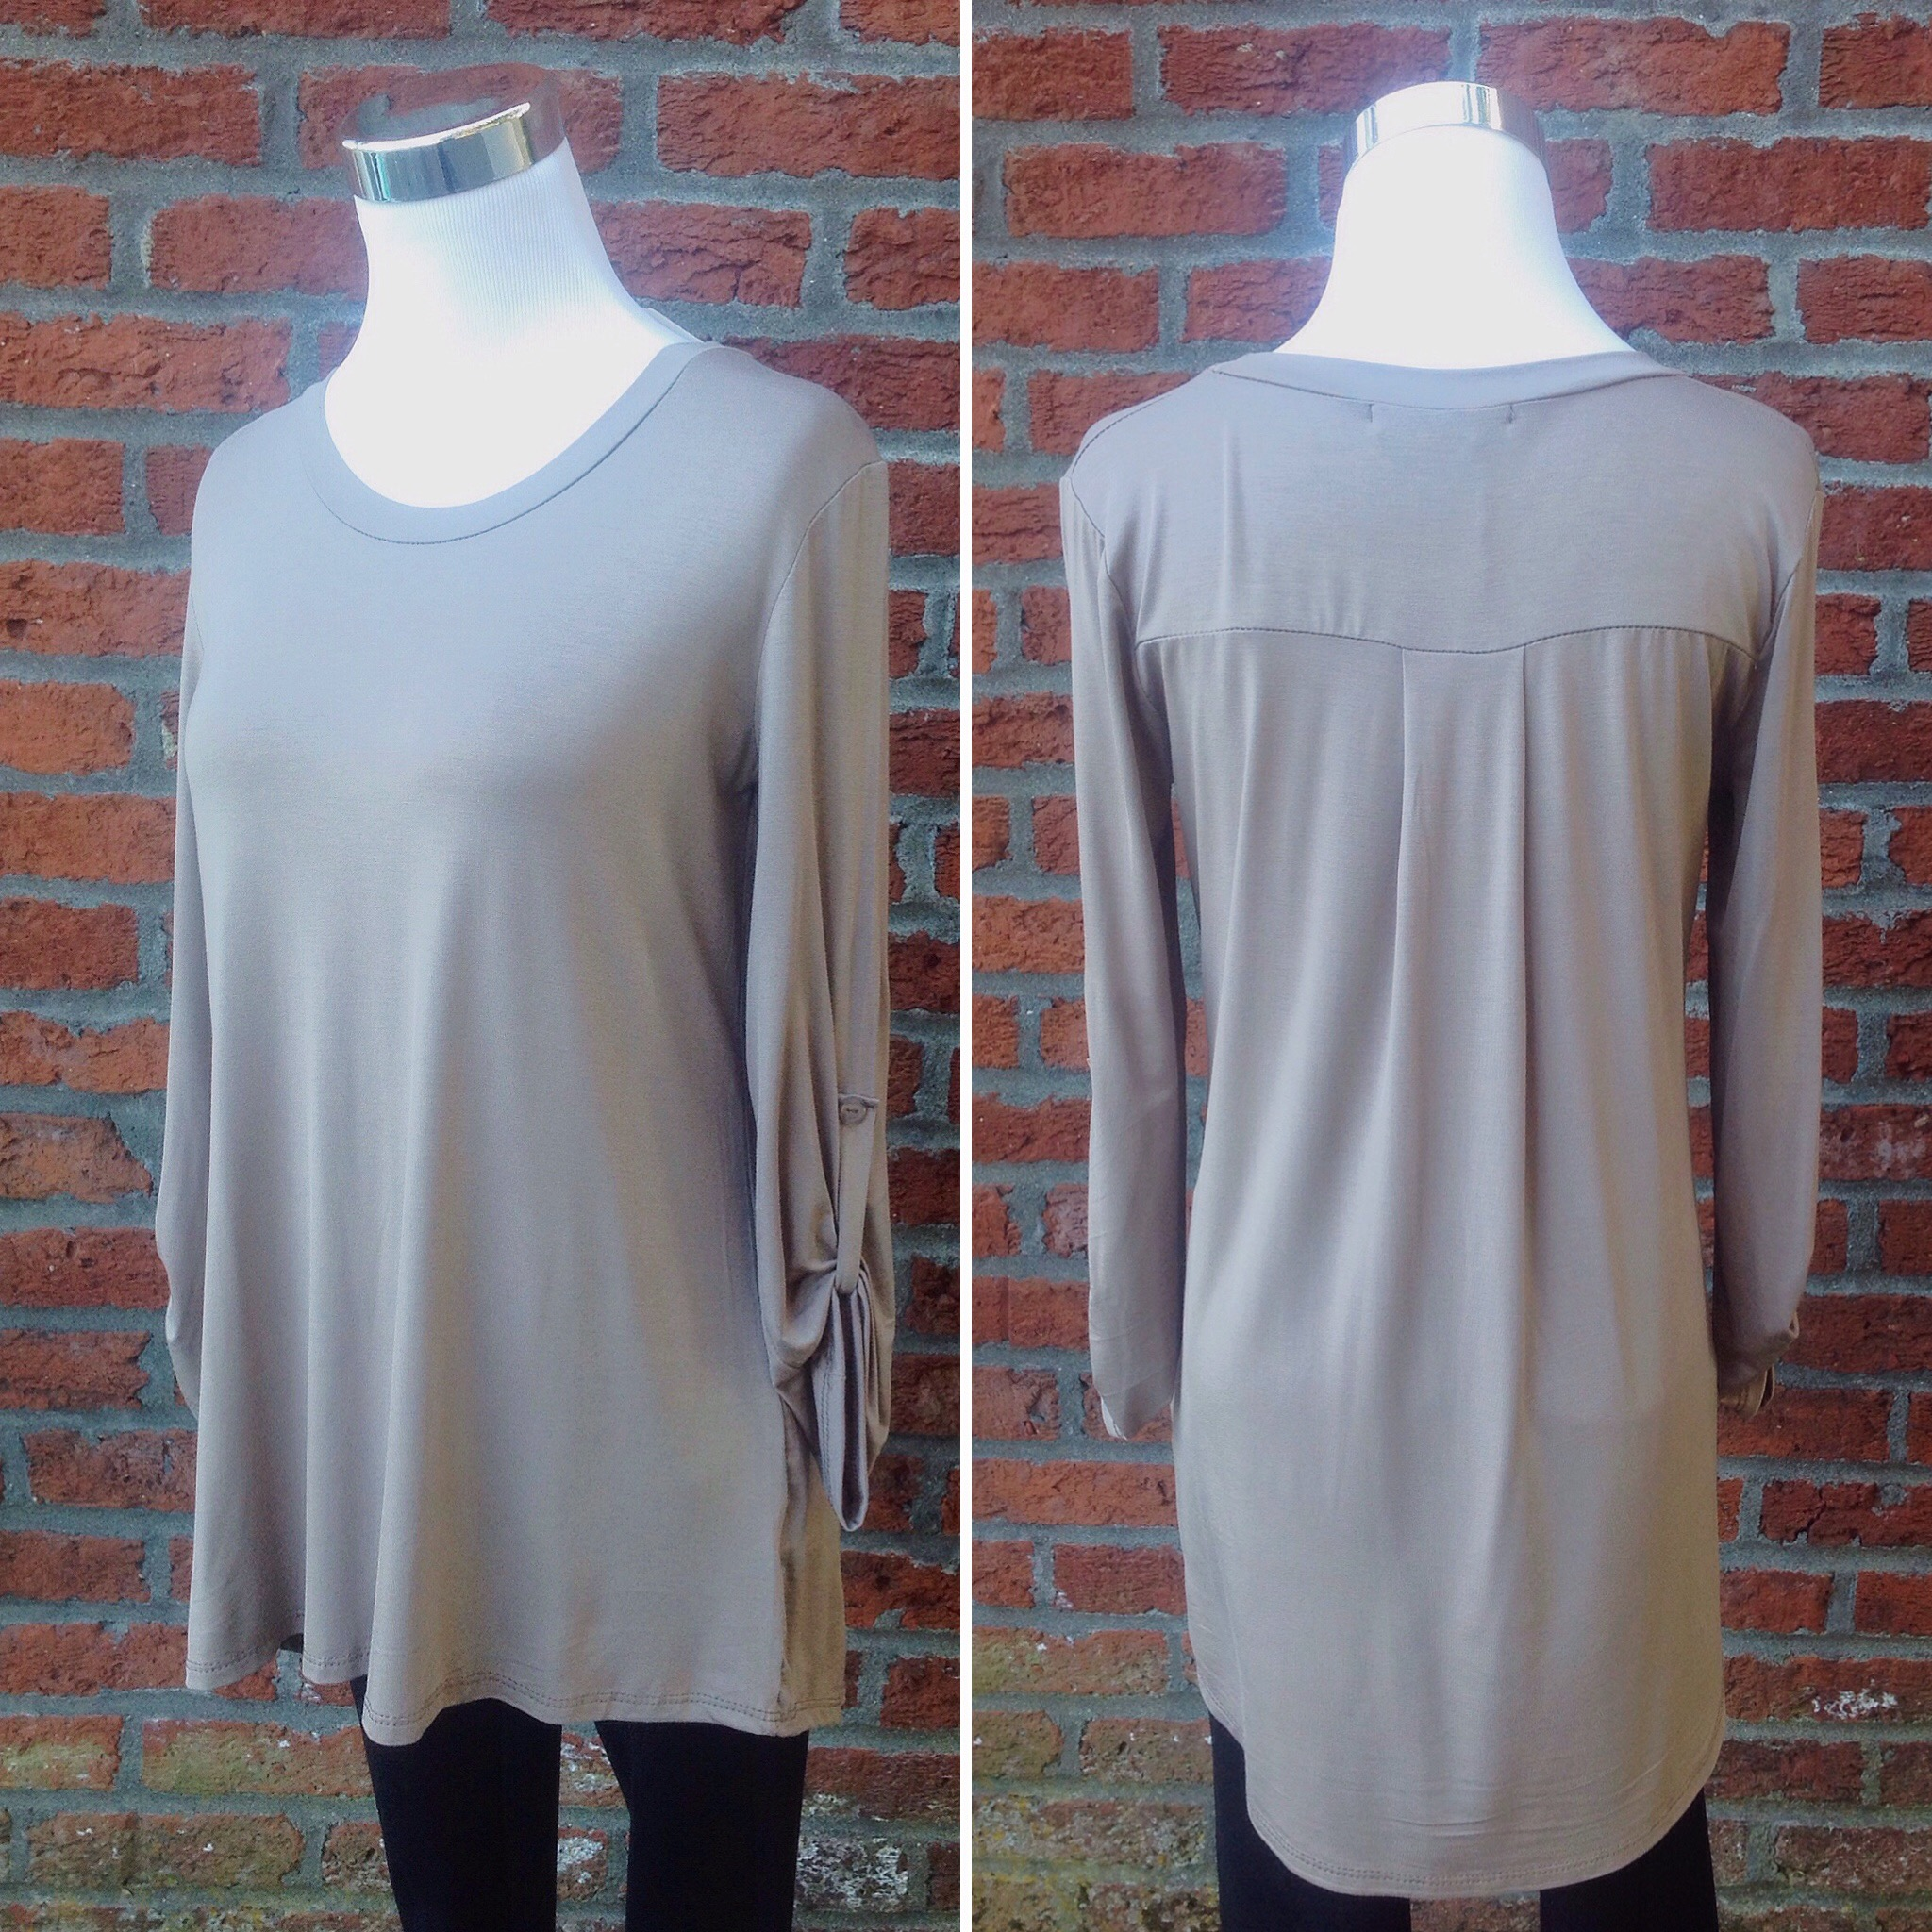 Mocha jersey knit top with roll tab sleeves, $30